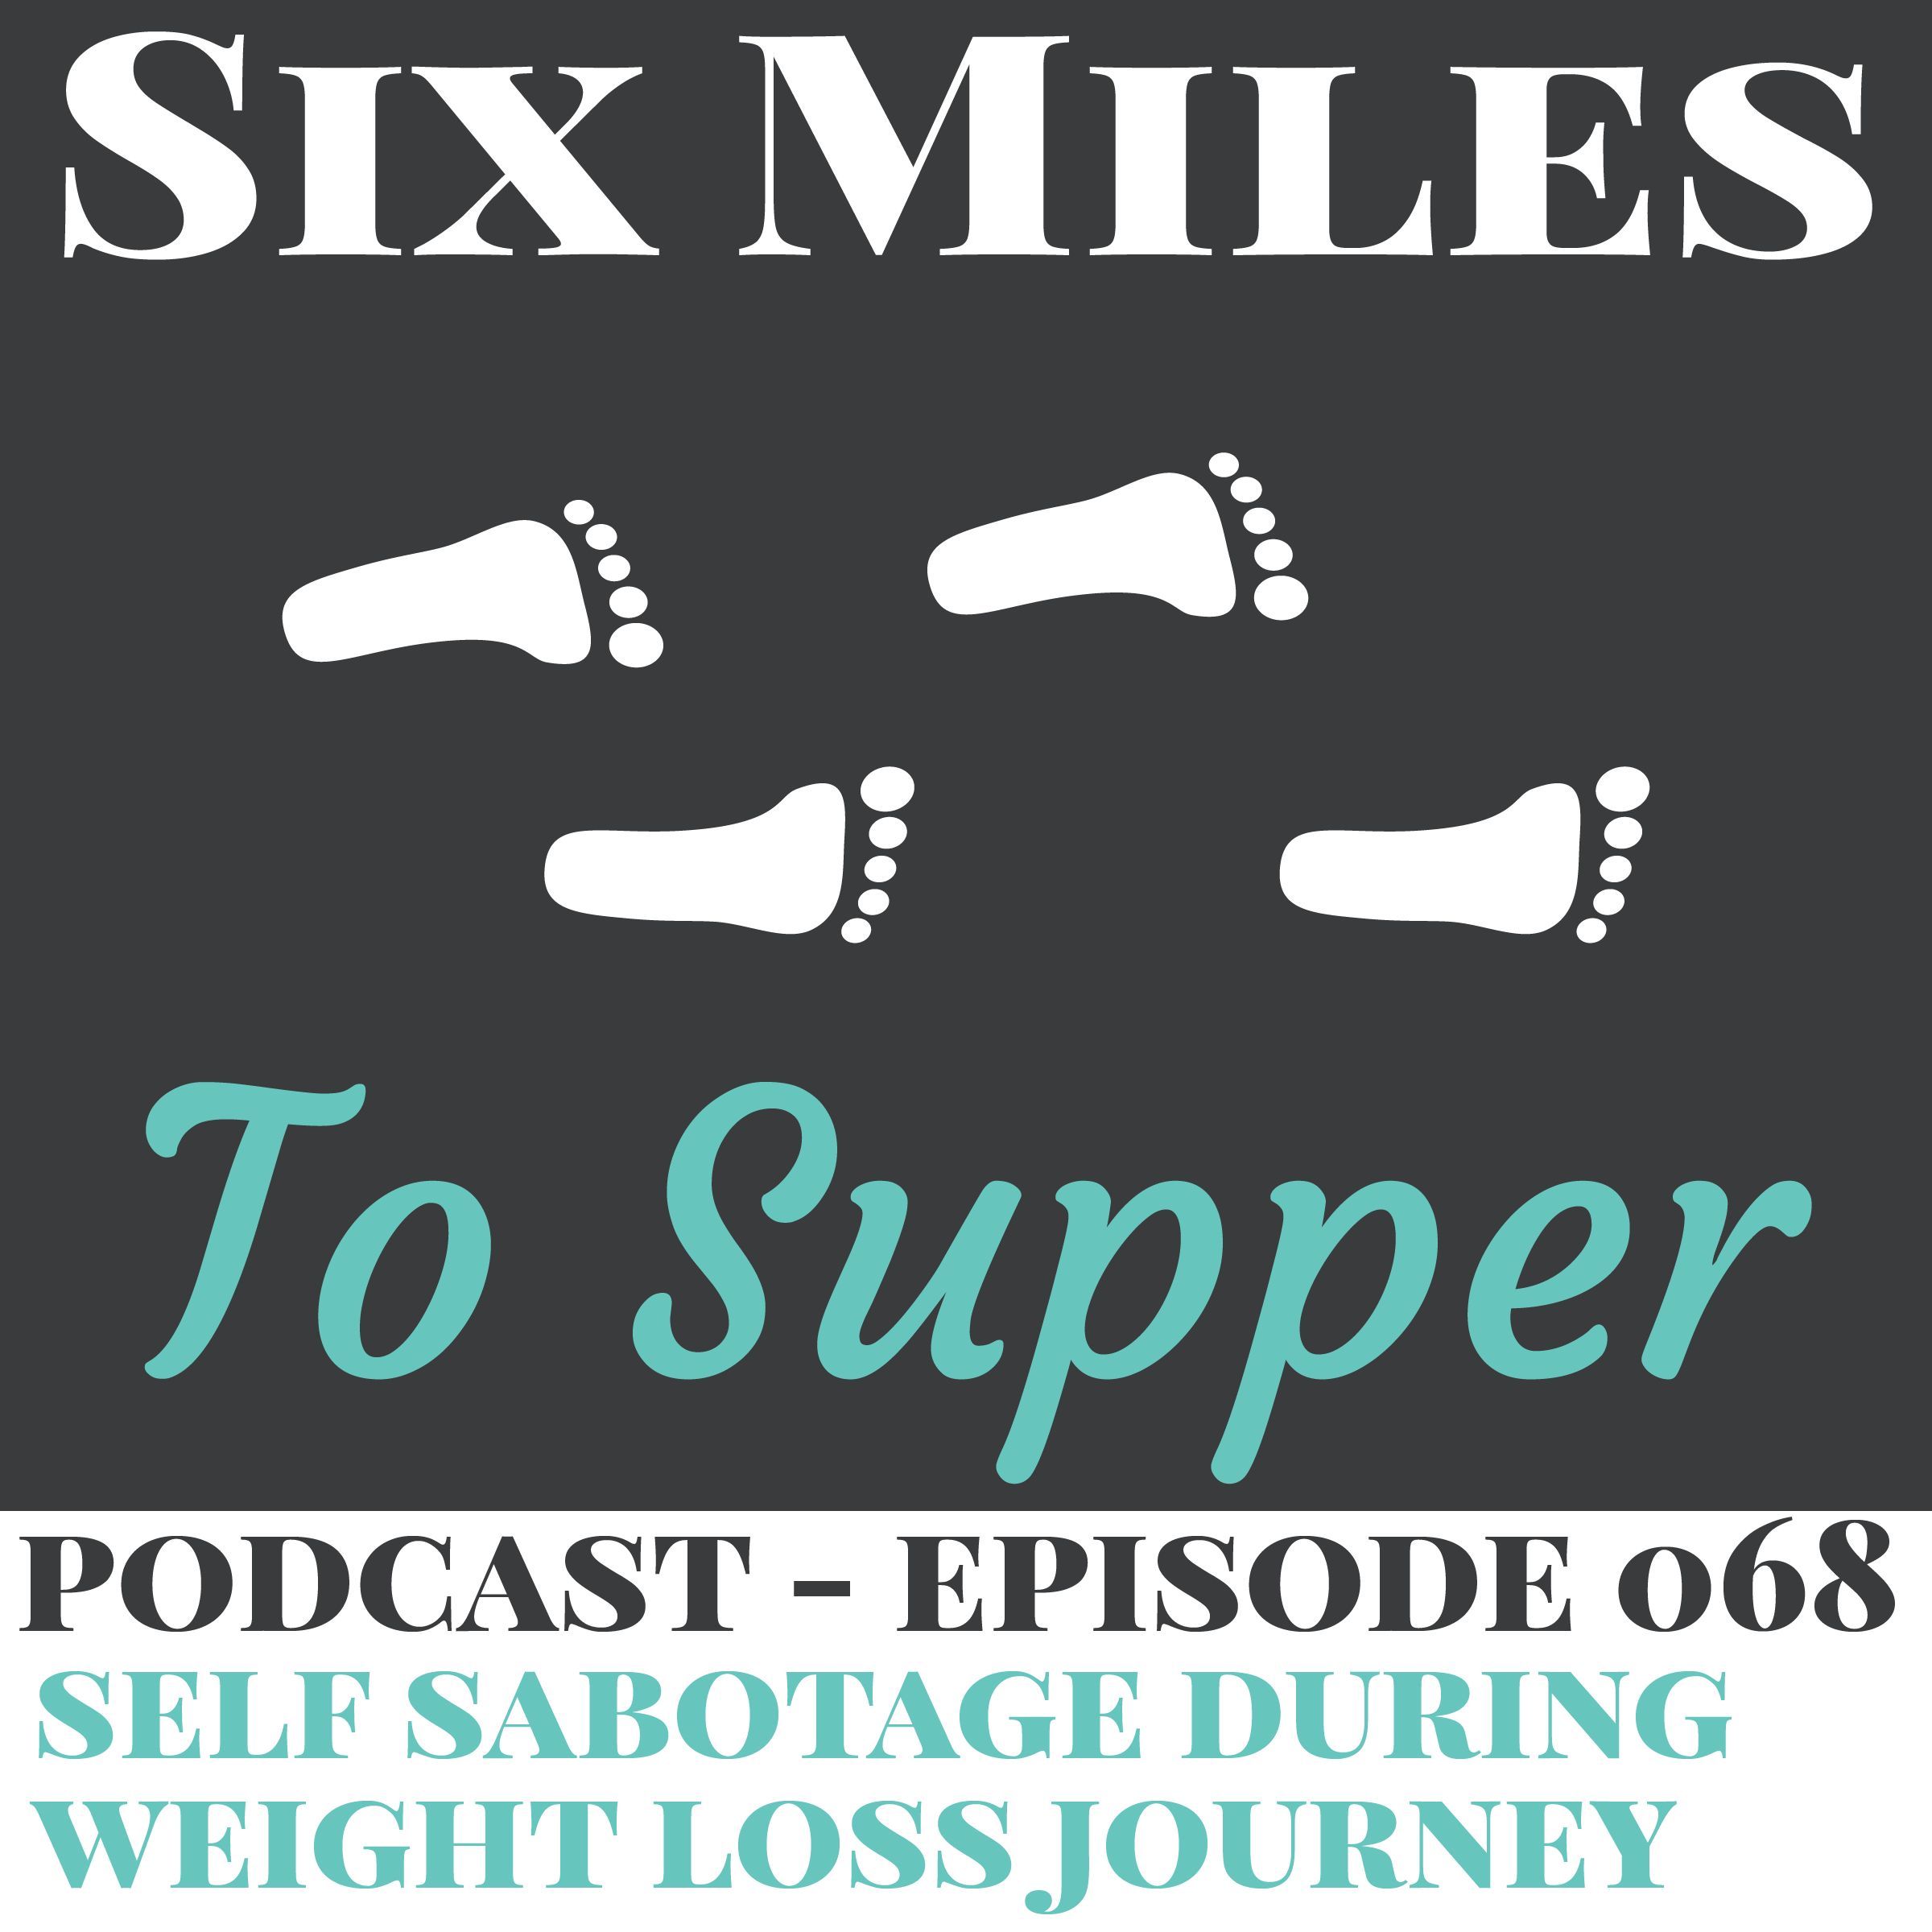 SMTS 068: Self Sabotage During The Weight Loss Journey